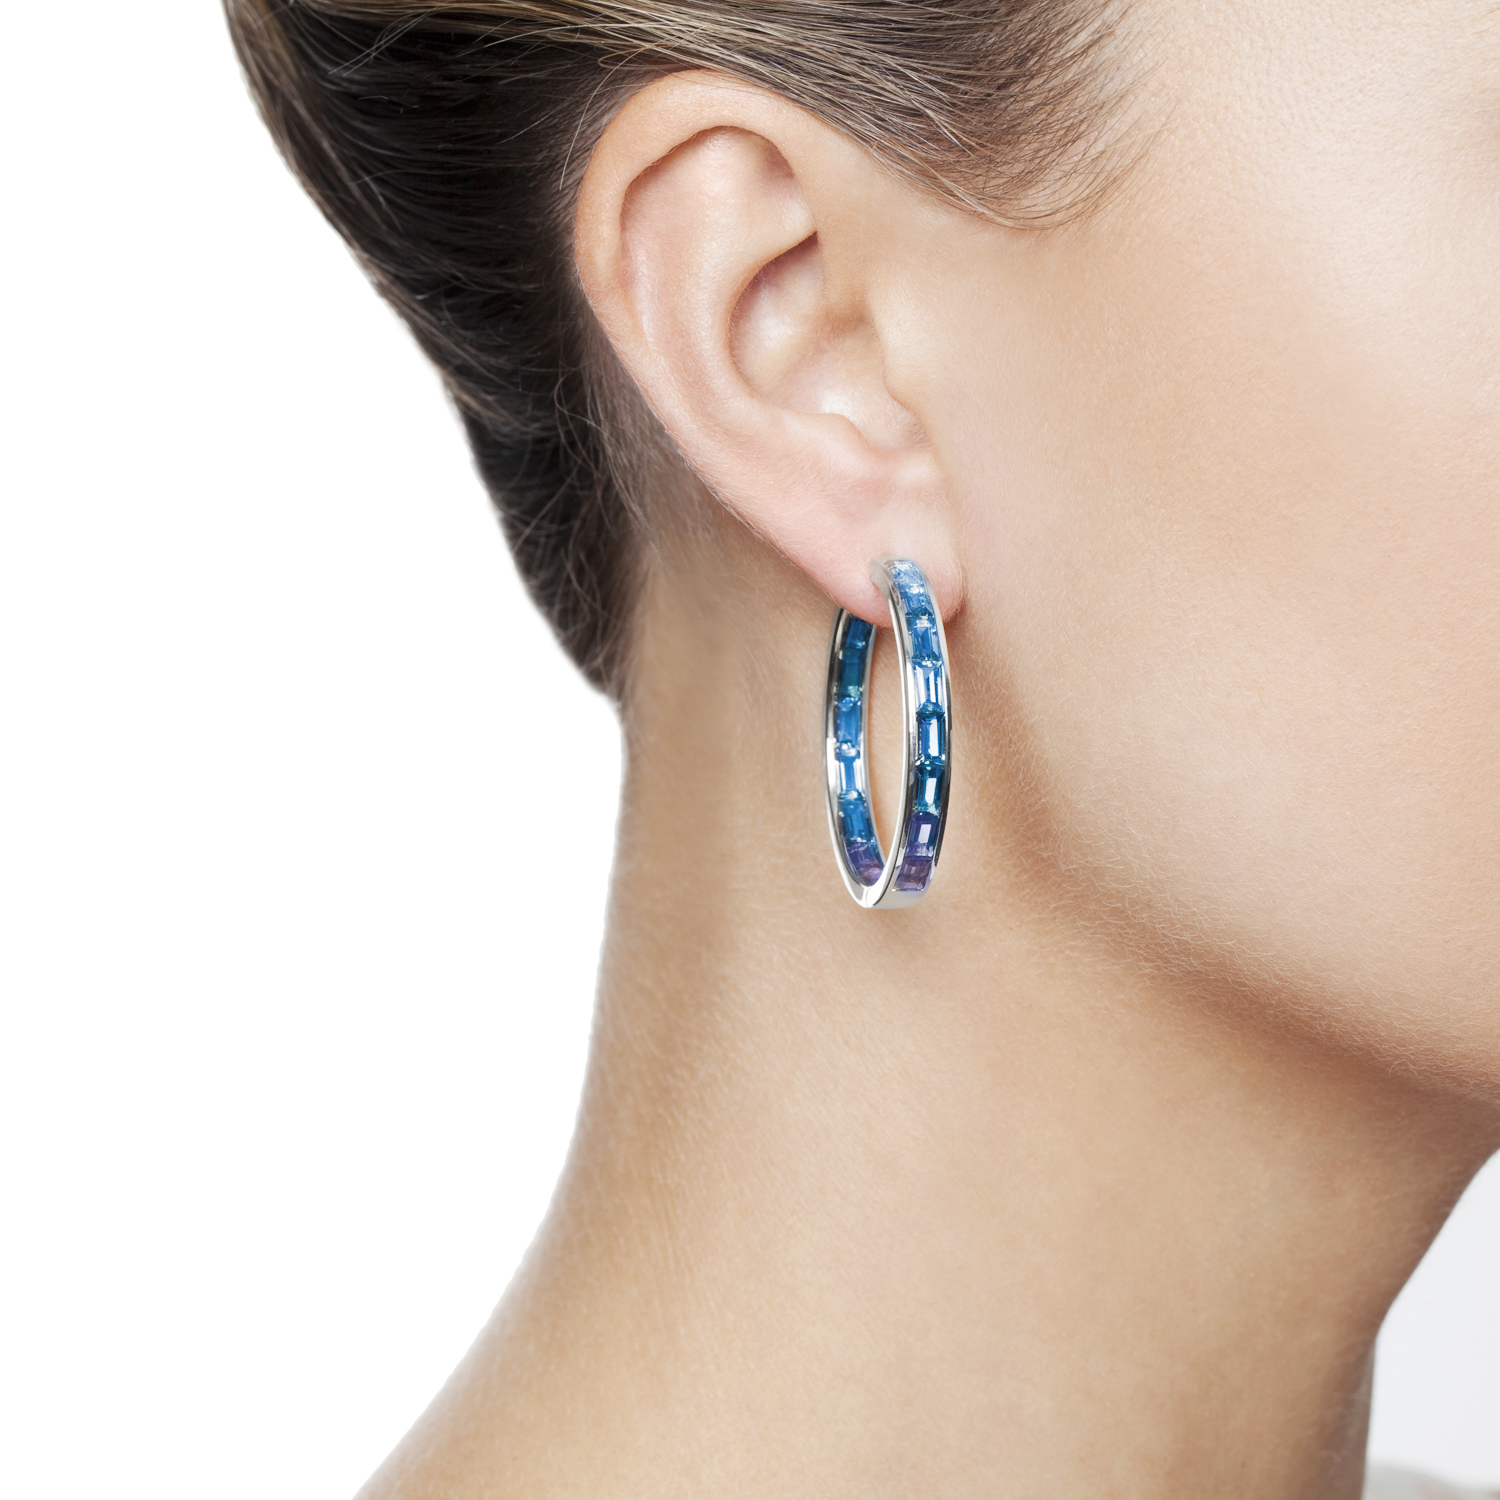 Dawn Light Hoop Earrings by Daou Jewellery on curated-crowd.com